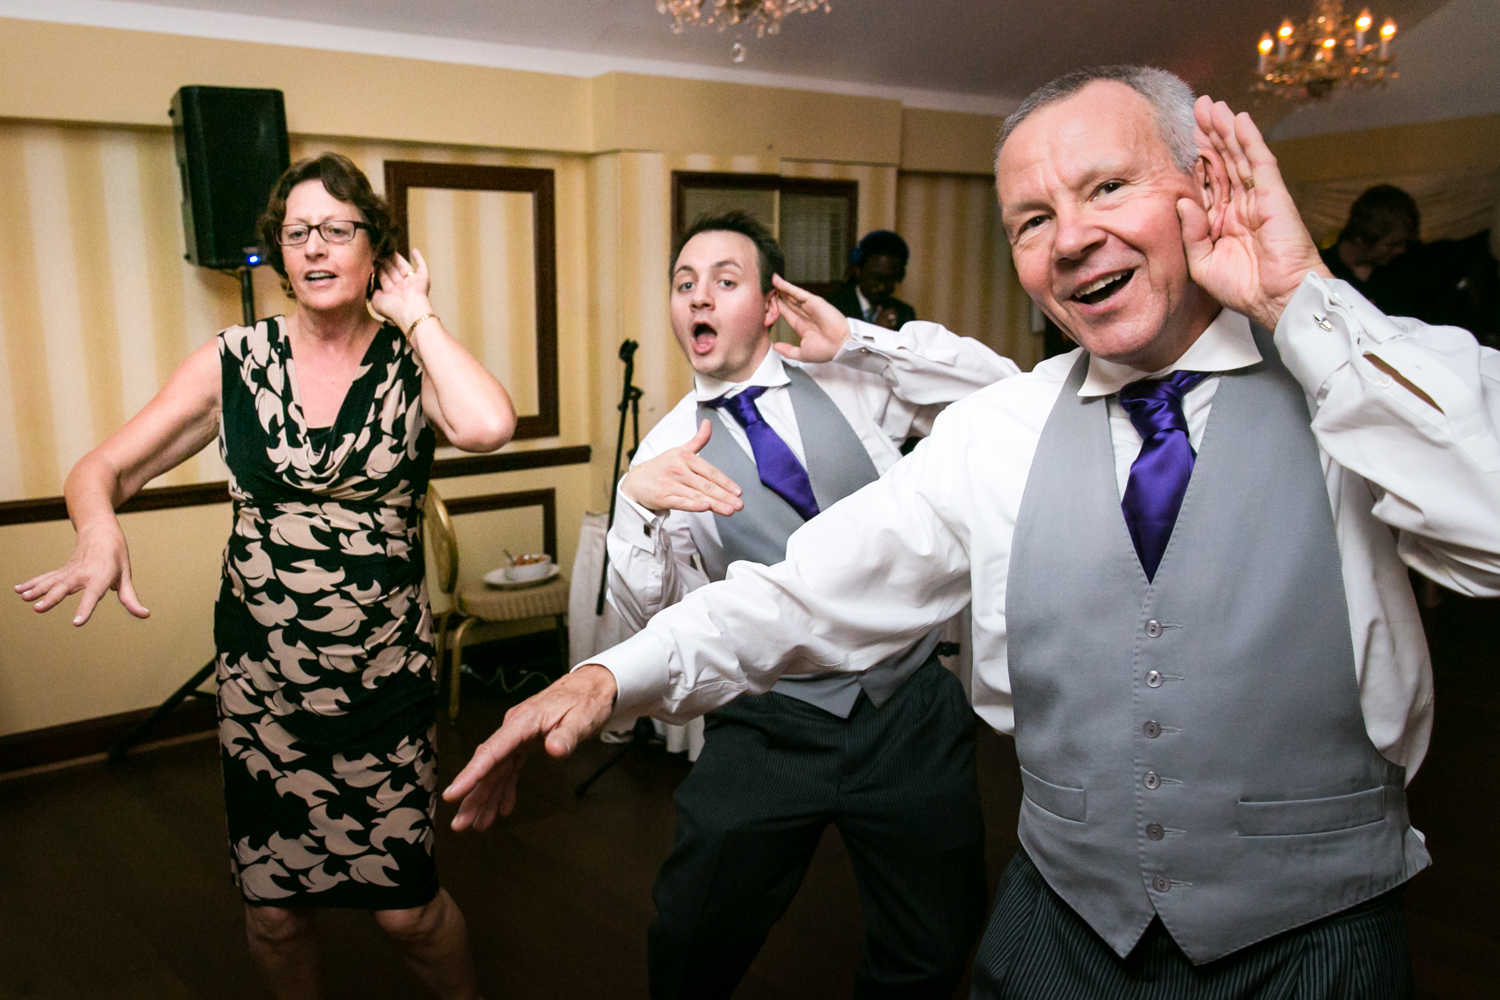 Three guests dancing at wedding reception with arms outstretched